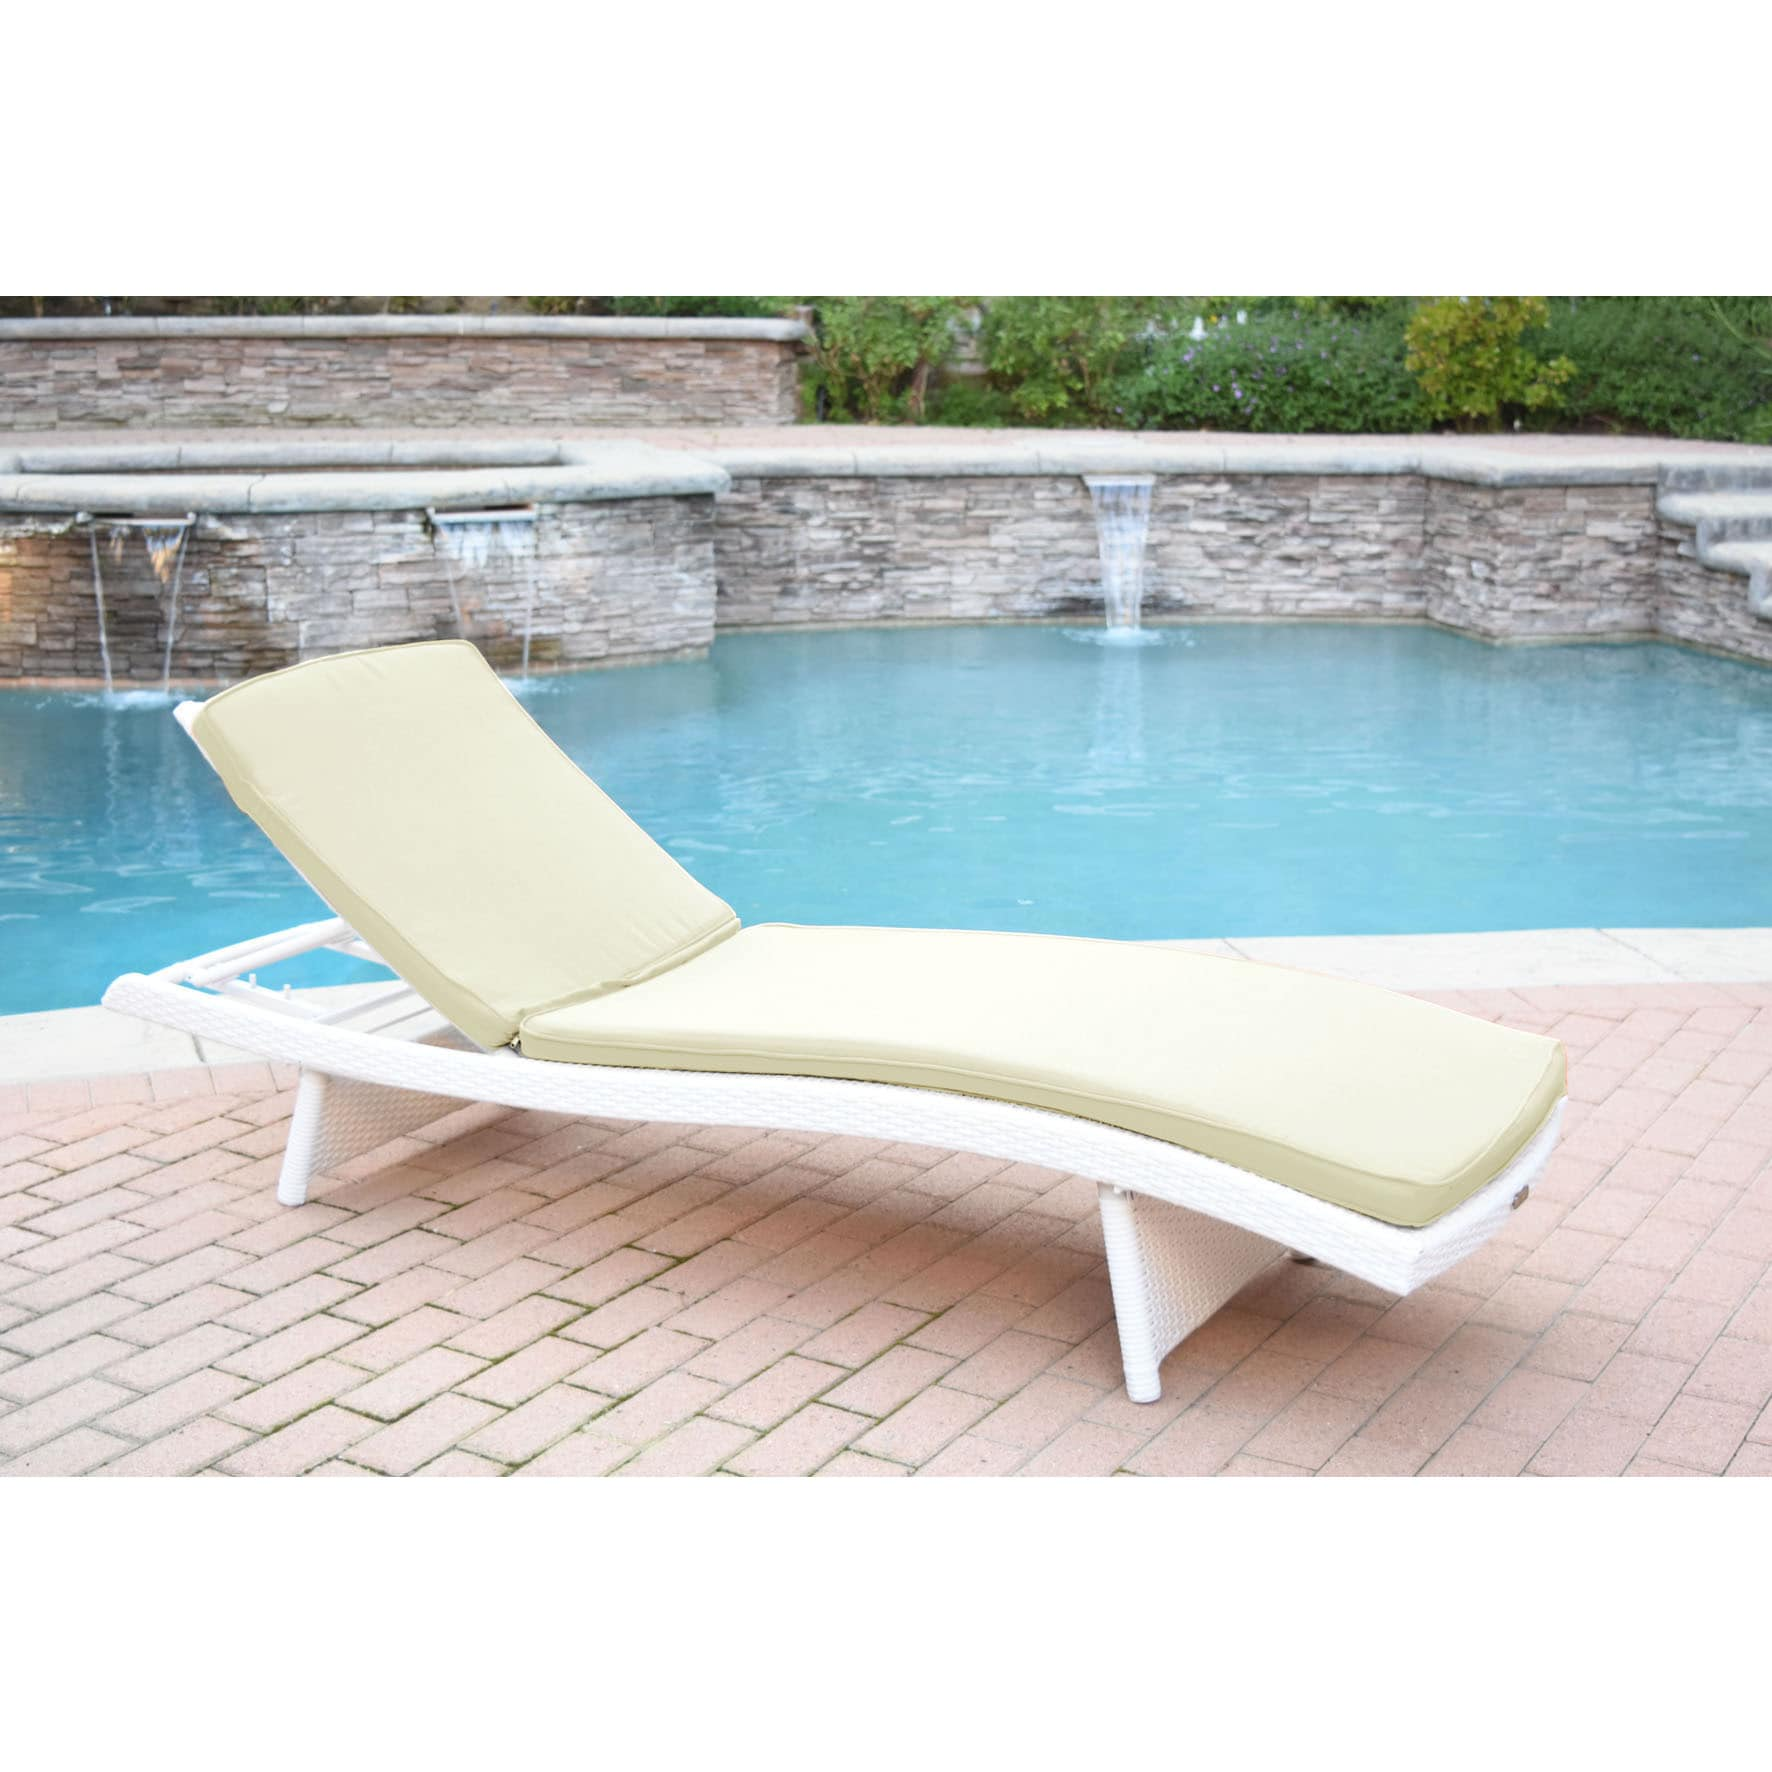 Jeco White Wicker Adjustable Chaise Lounger with Cushions...